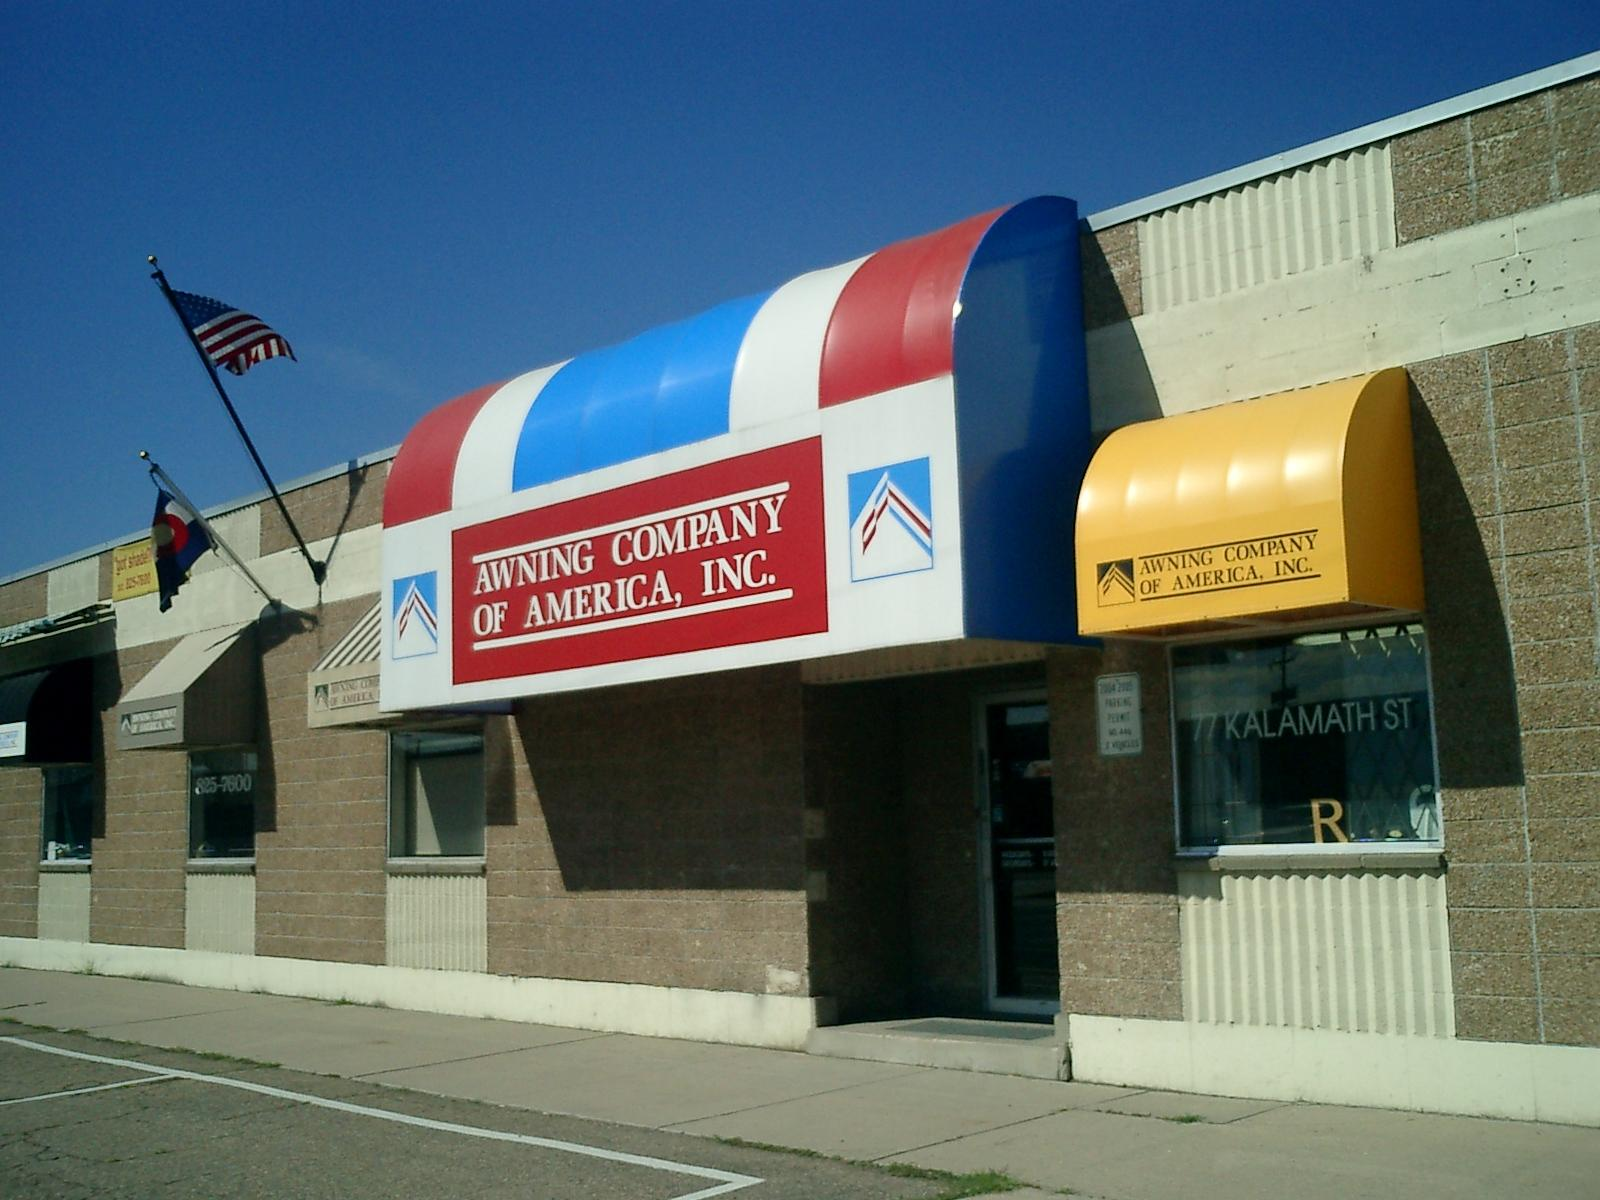 JPG Click To Enlarge Image Awning Company Of America Backlit Convex